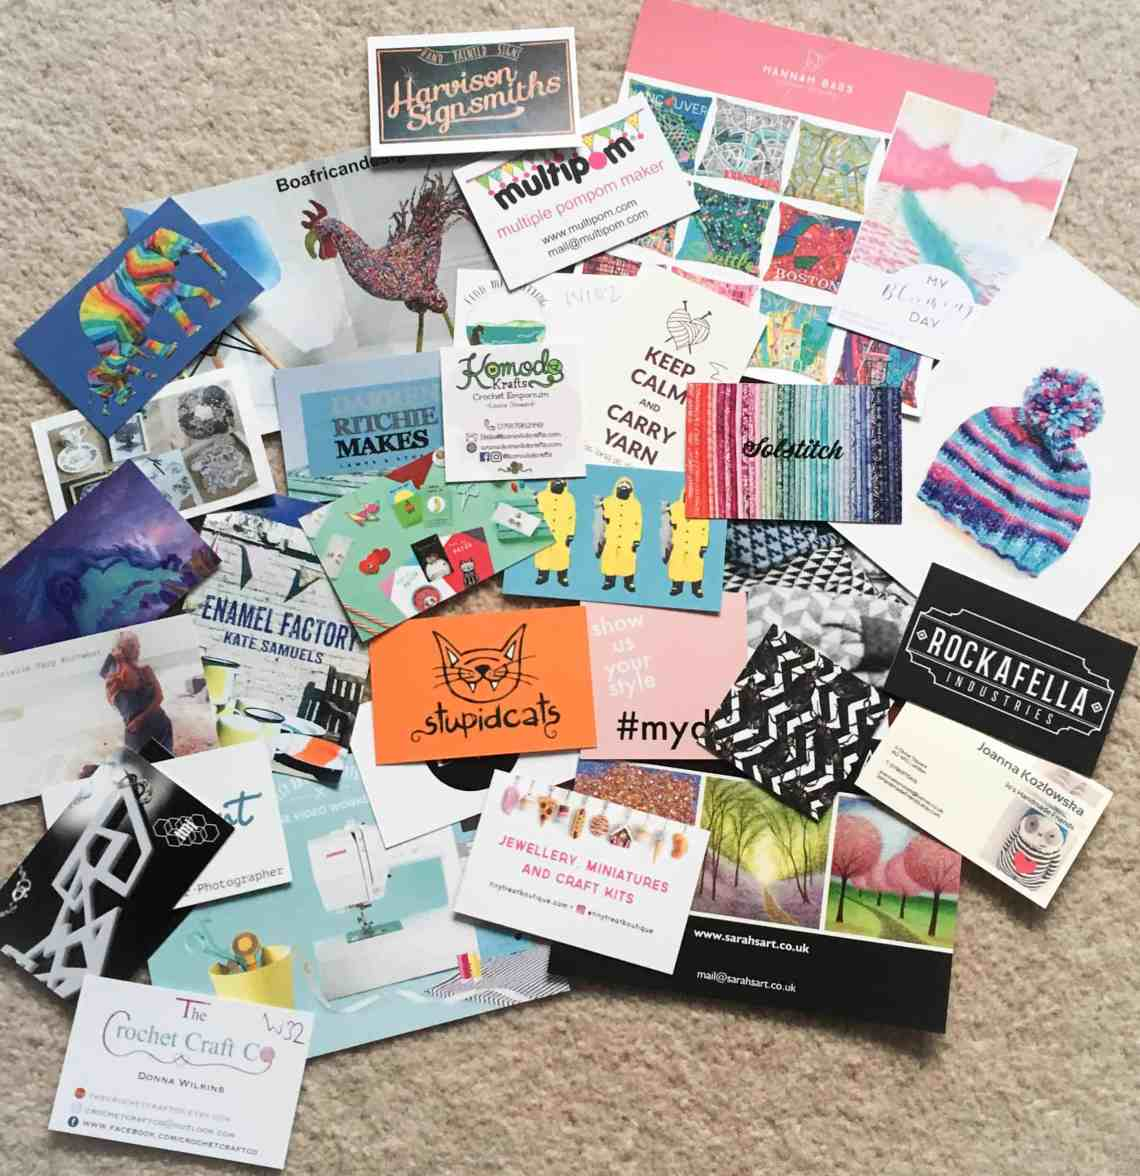 Dora Does' card collection from The Handmade Fair